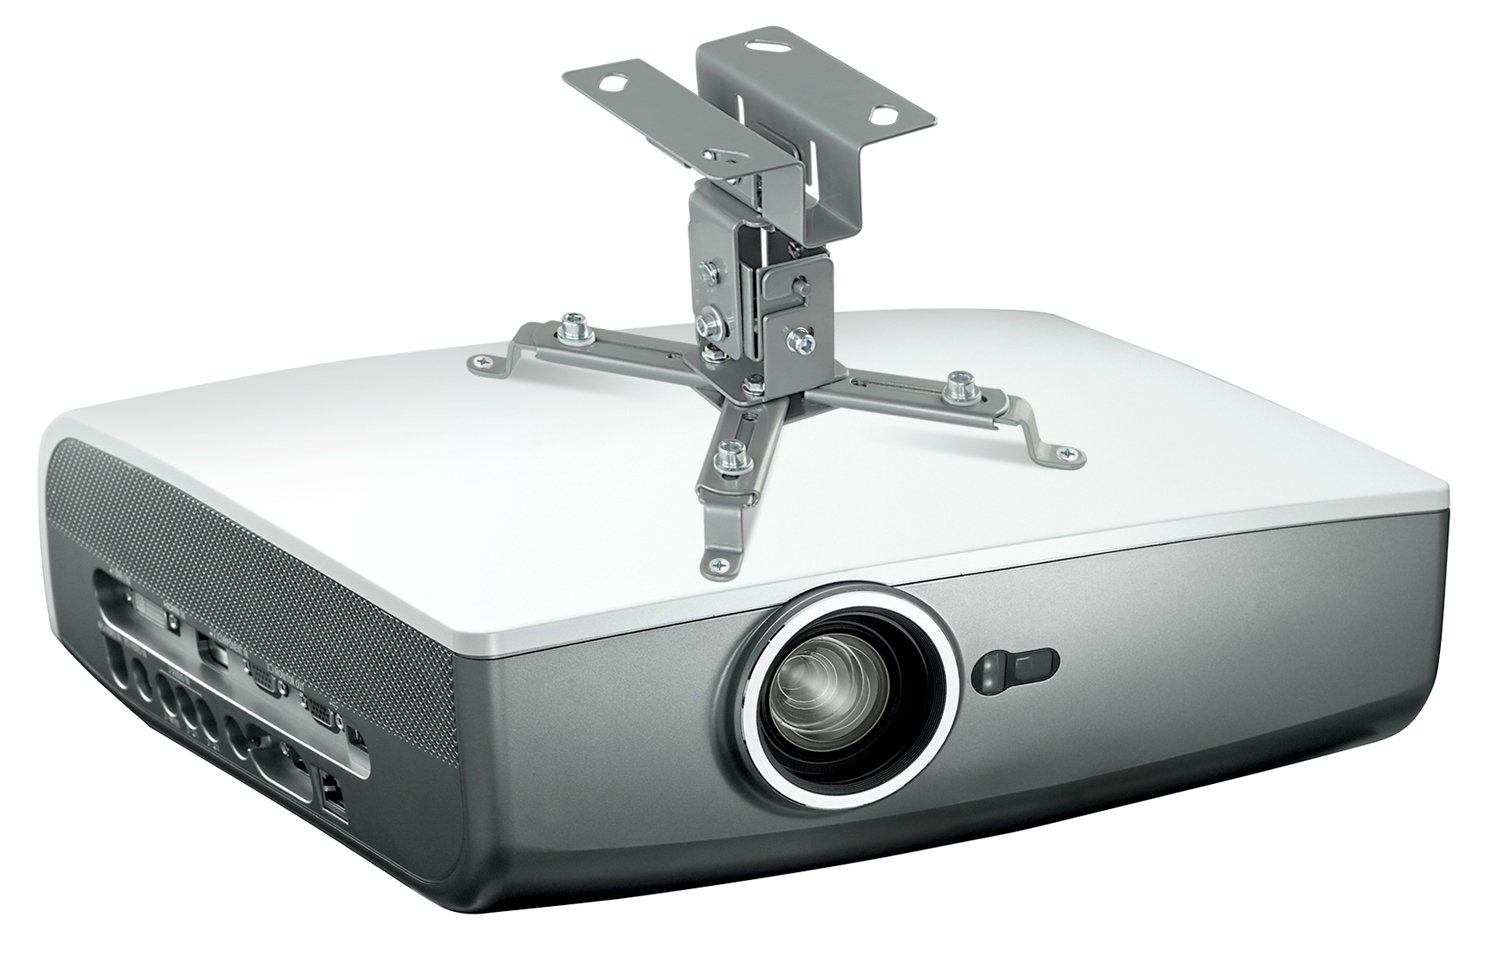 lcddlp mount white dlp or vaulted lcd projector fits flat loctek bracket ceiling both store